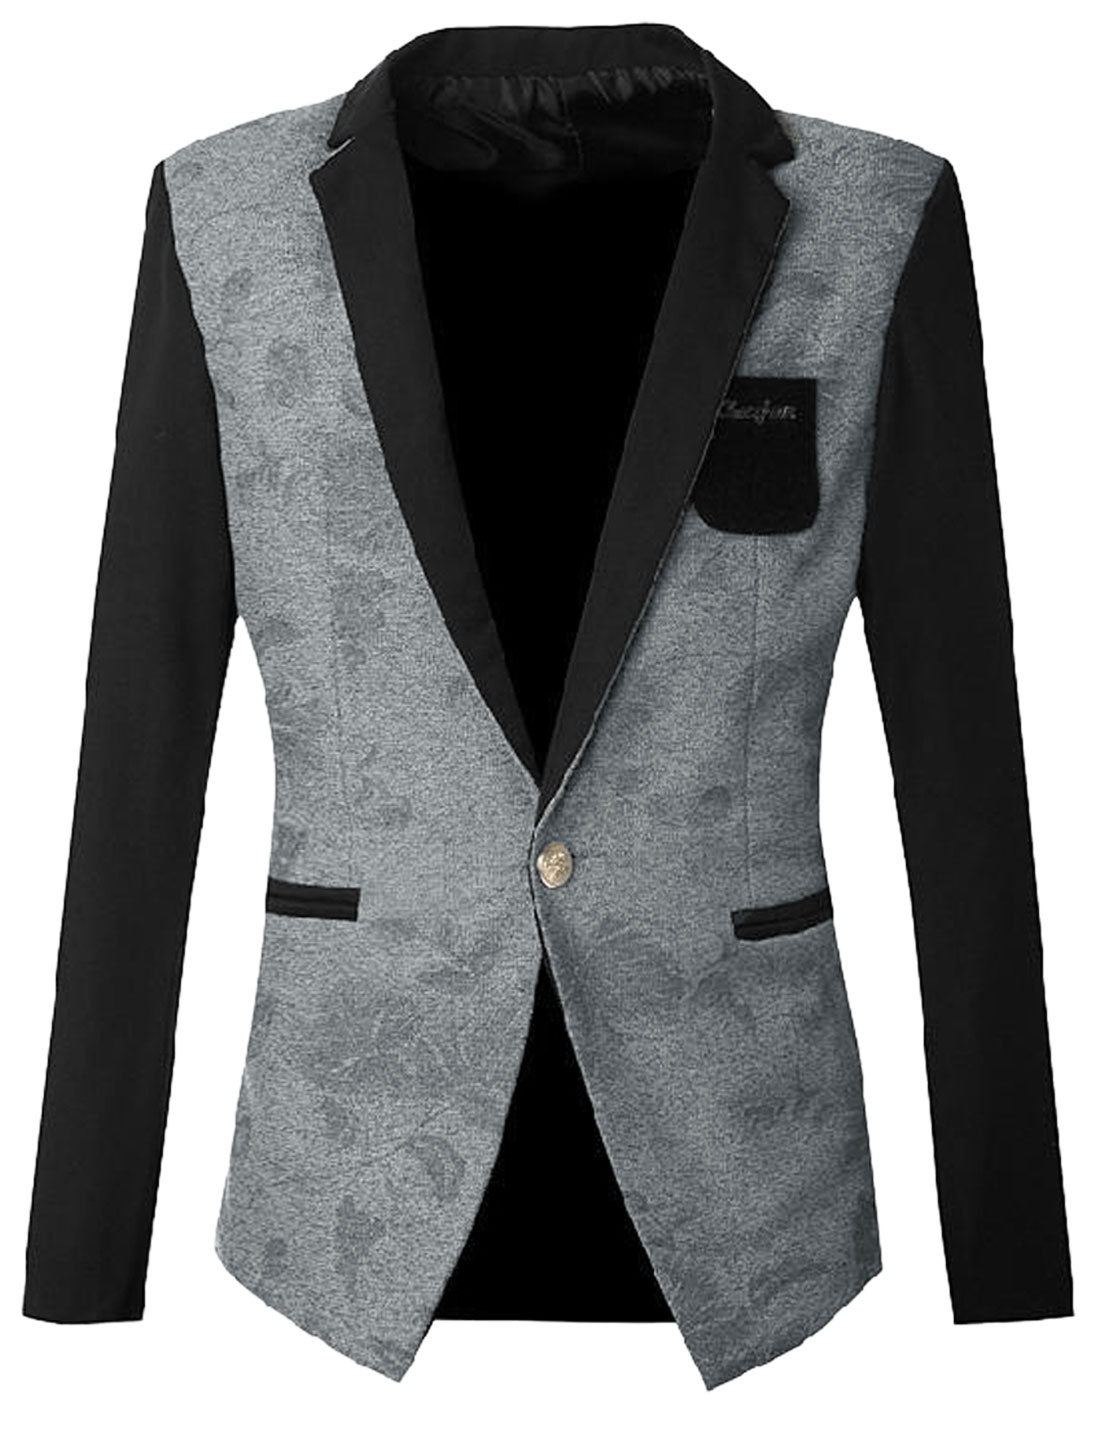 Men Long Sleeve Floral Design Premium Blazer Jacket Light Gray S